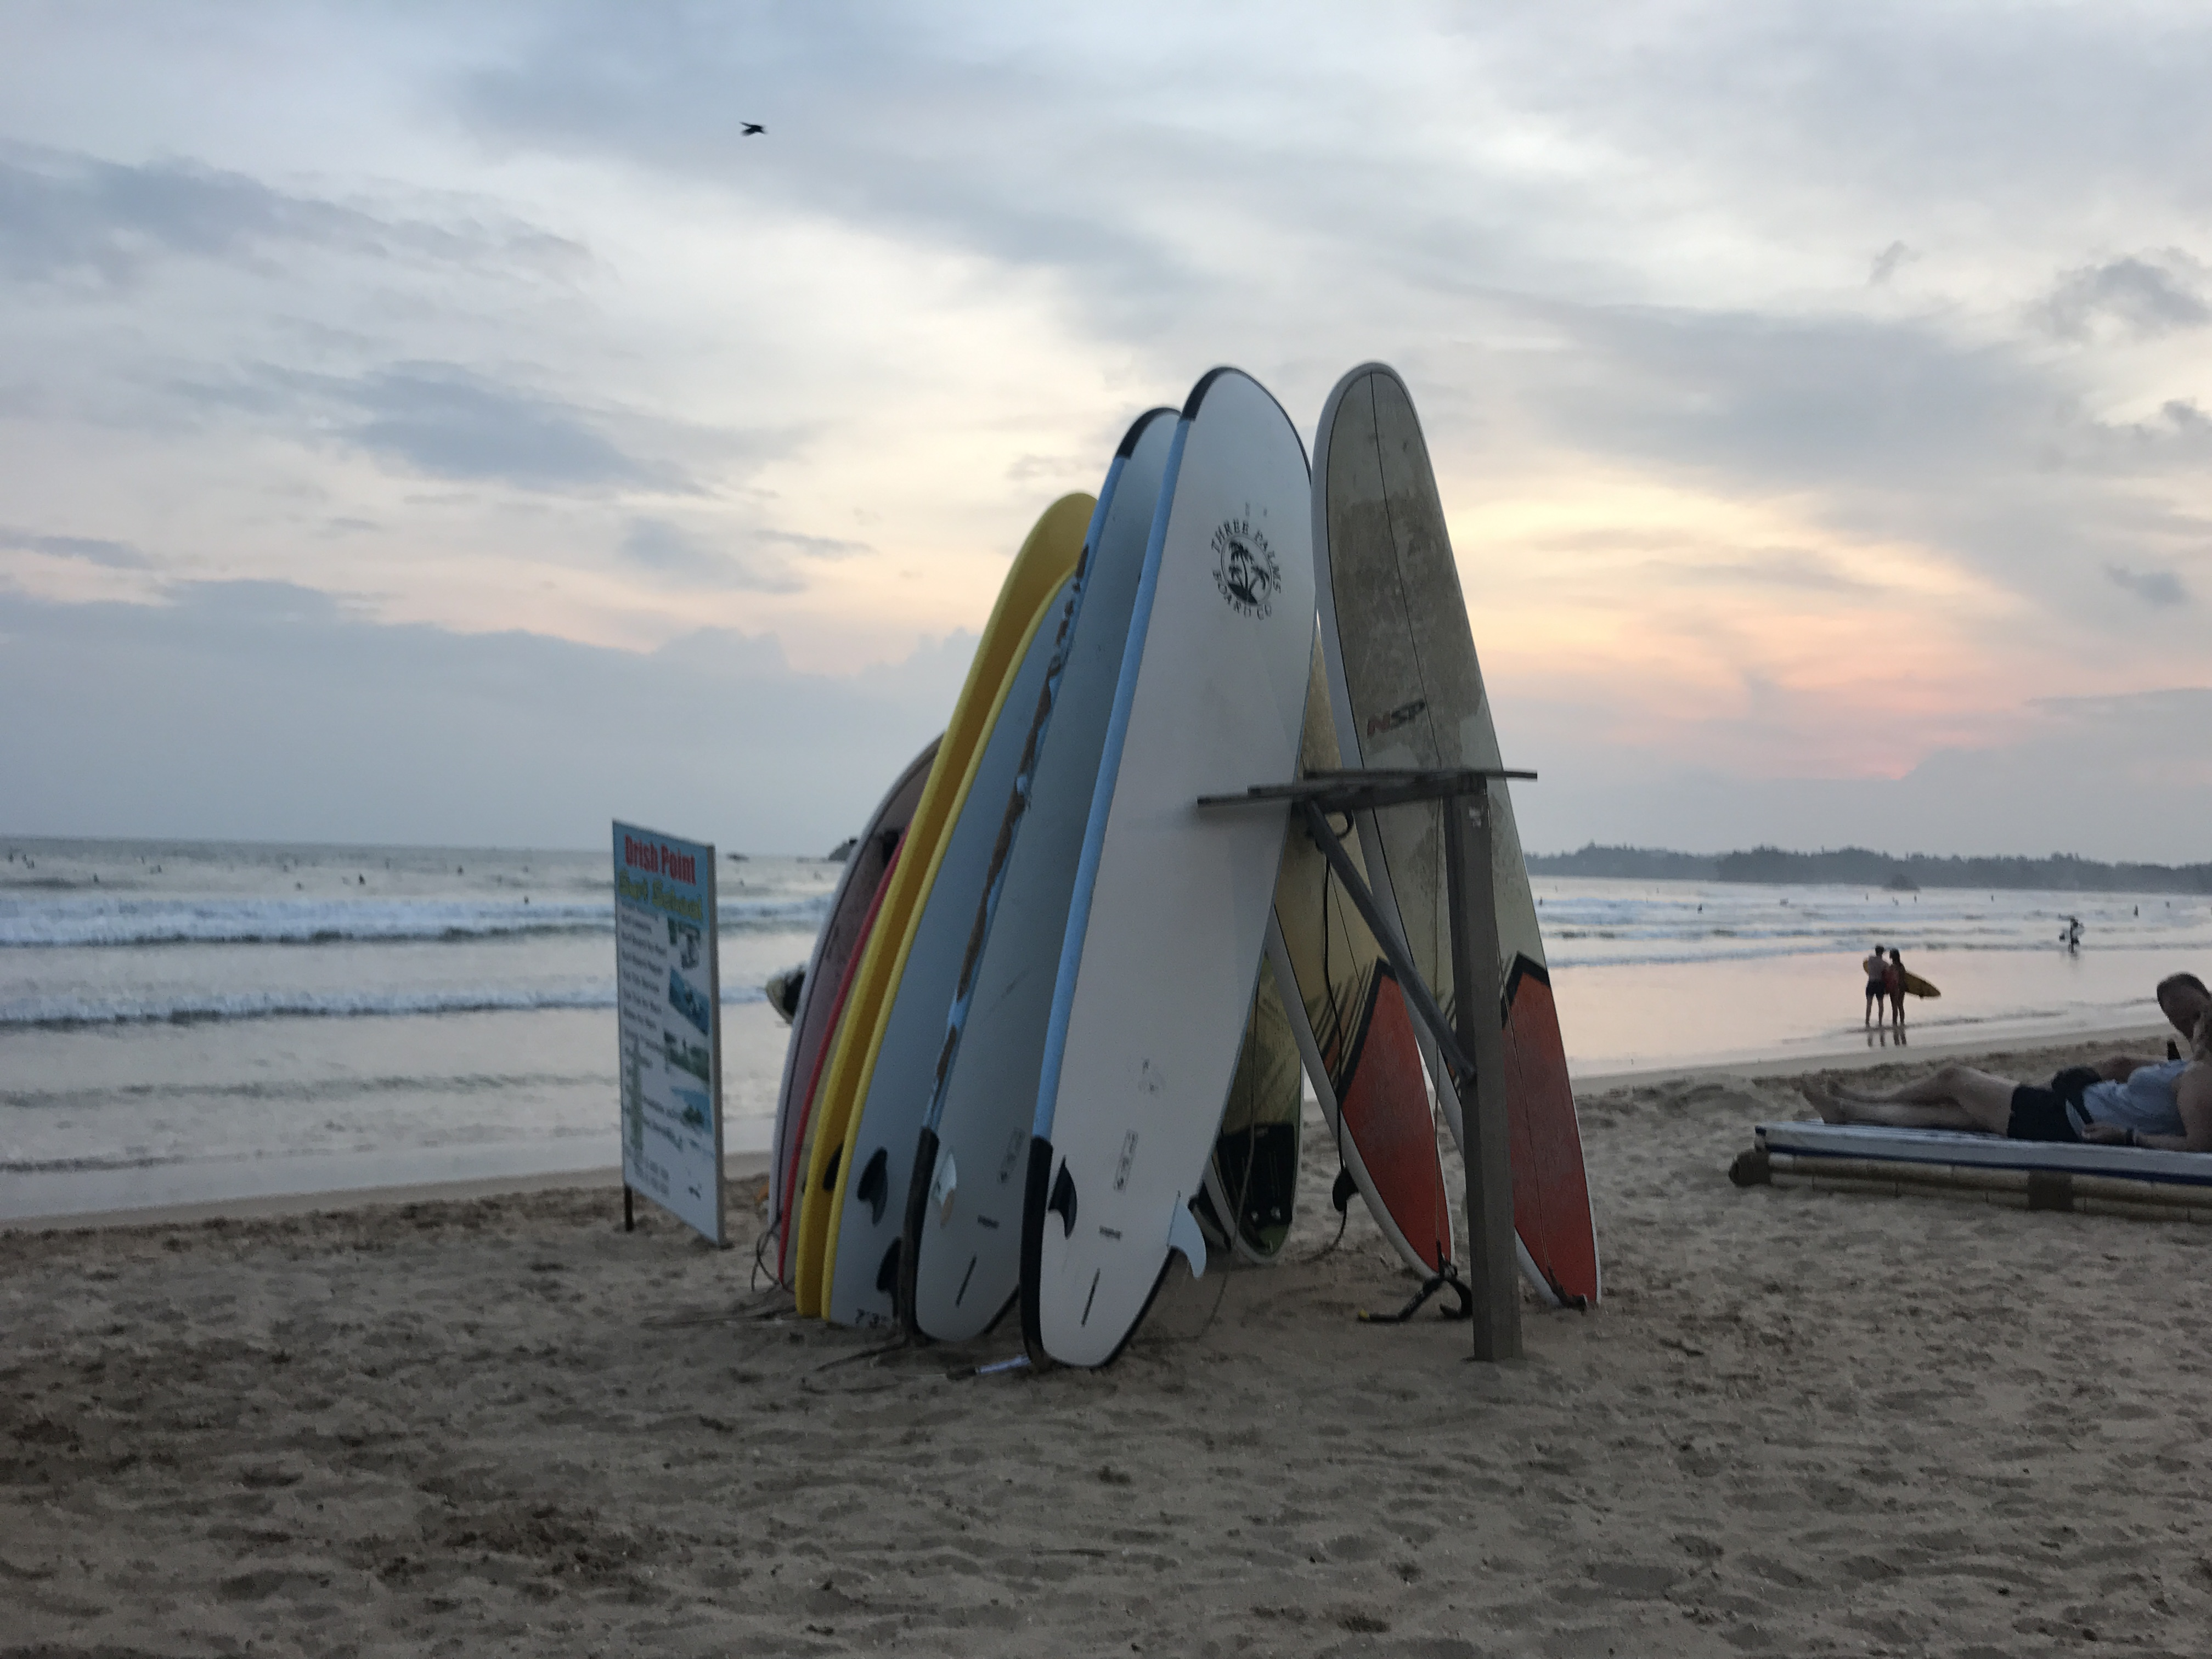 Sunset Surfing in Weligama